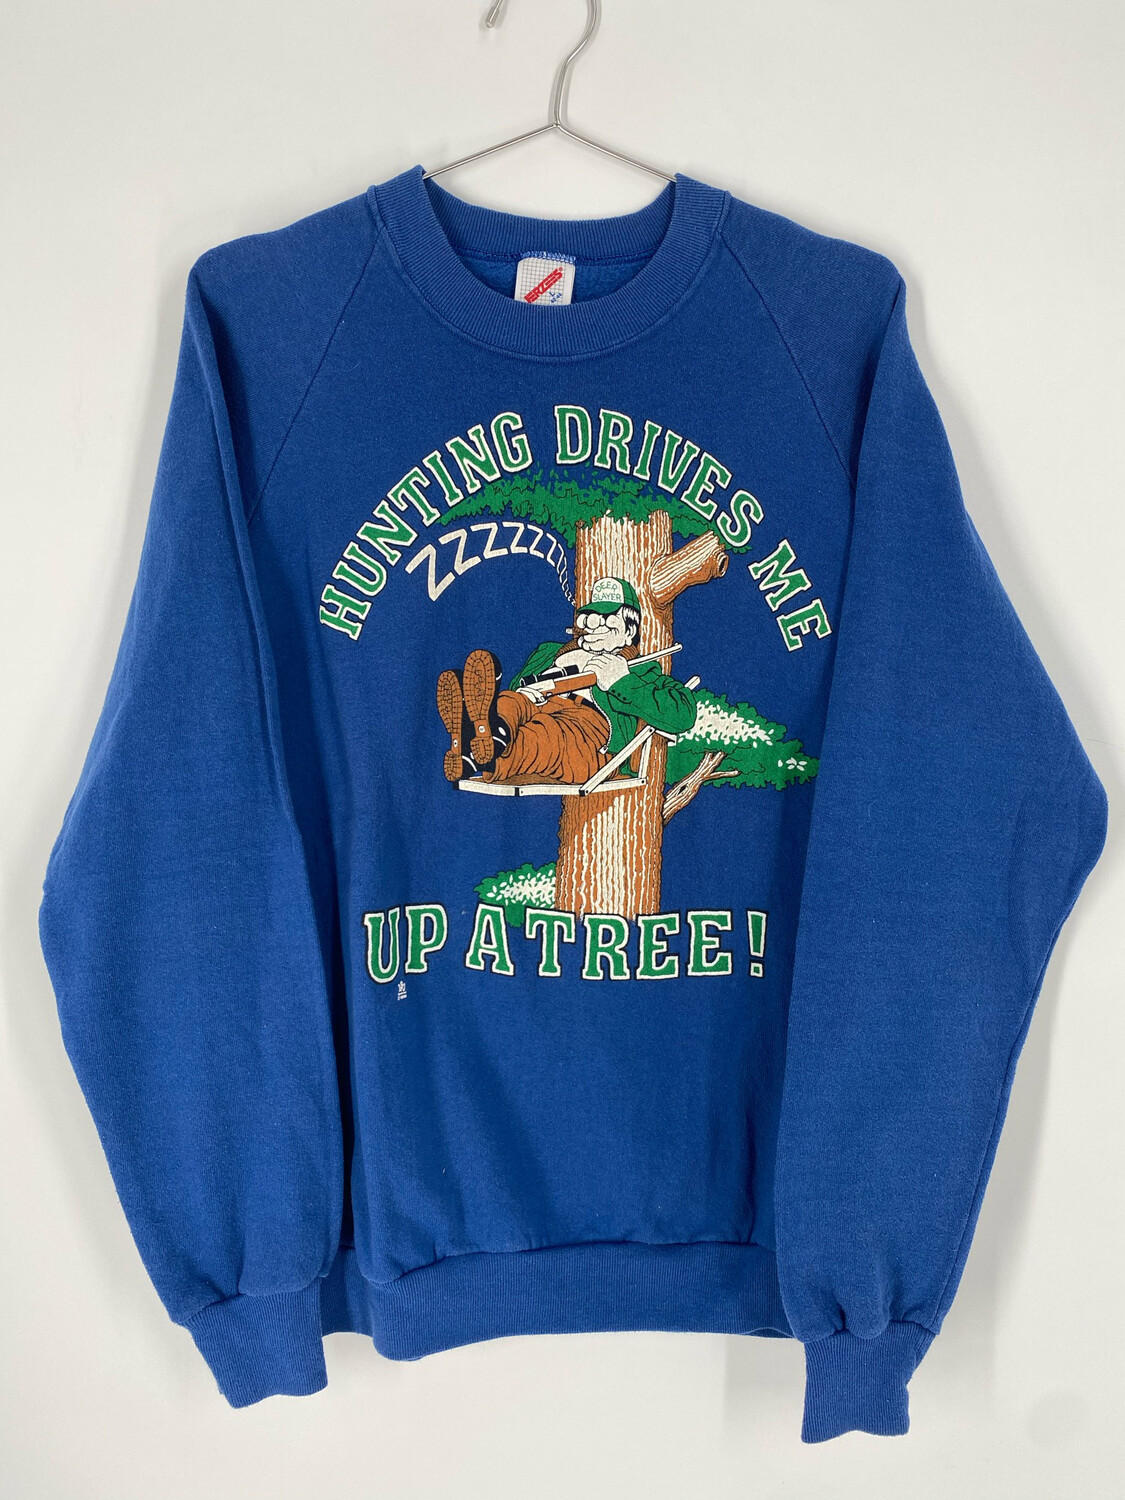 Hunting Drives Me Up A Tree! Vintage Crewneck Sweatshirt Size L